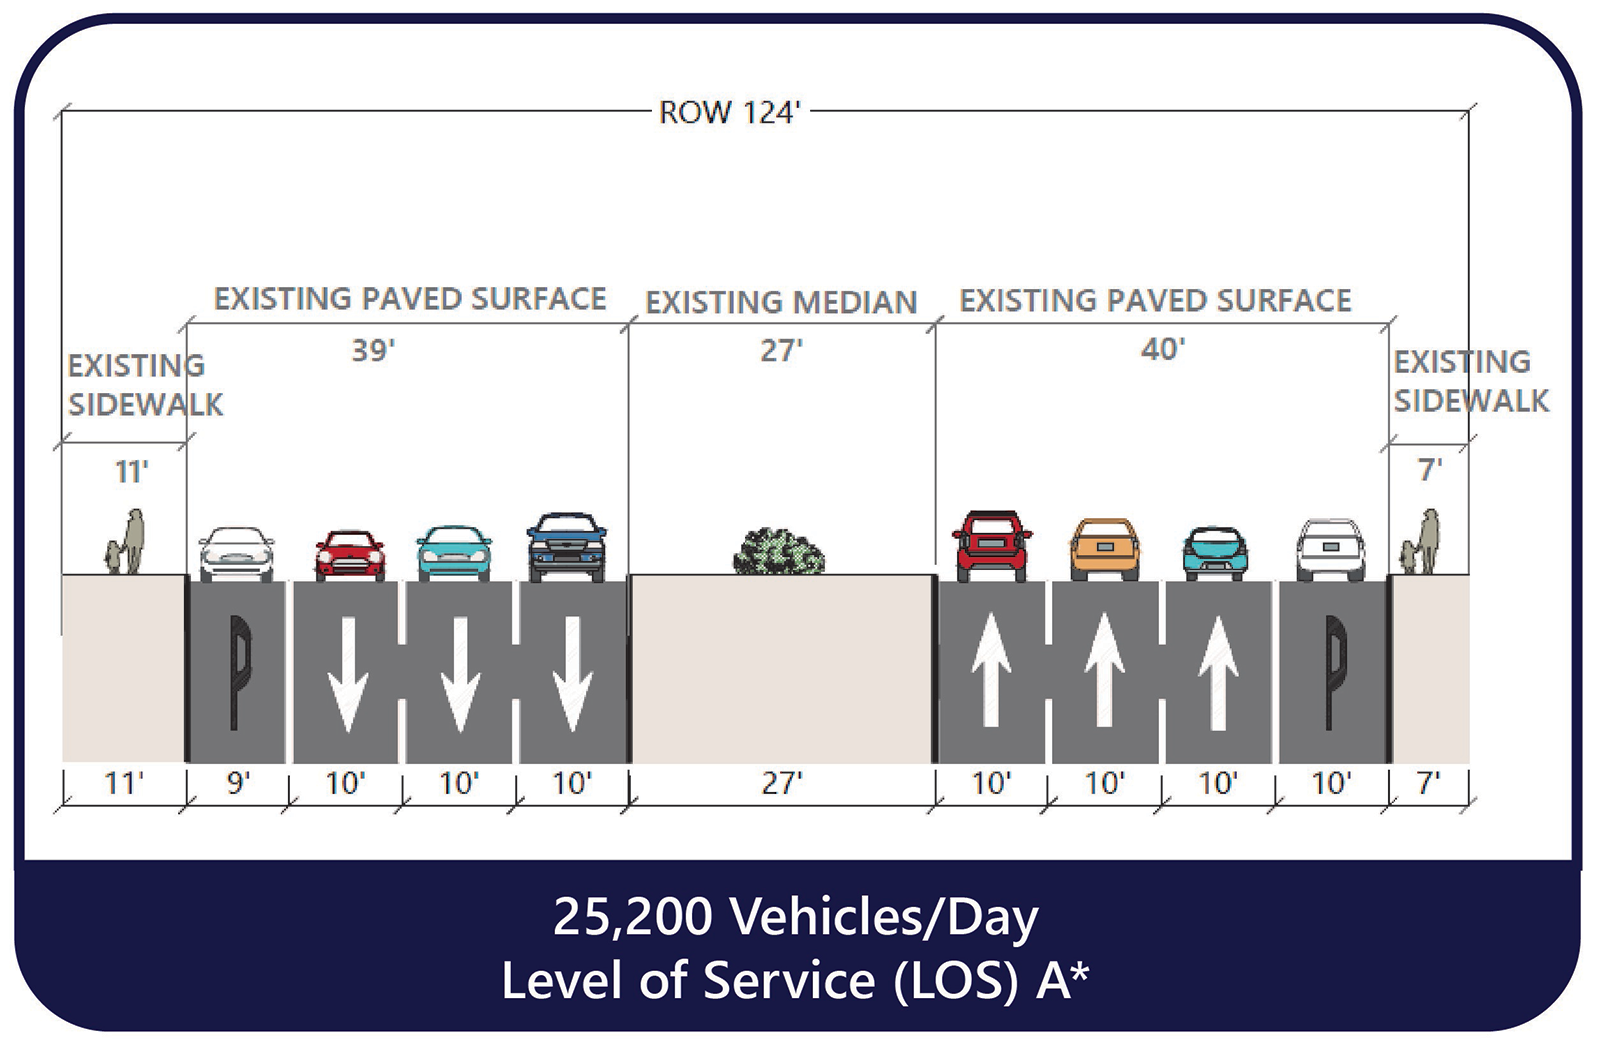 cross section diagram shows current El Camino Real roadway configuration between Albert M Teglia Boulevard and Mission Rd. Includes three lanes in each direction, curbside parking on both sides of the street, a wide, landscaped median, and sidewalks